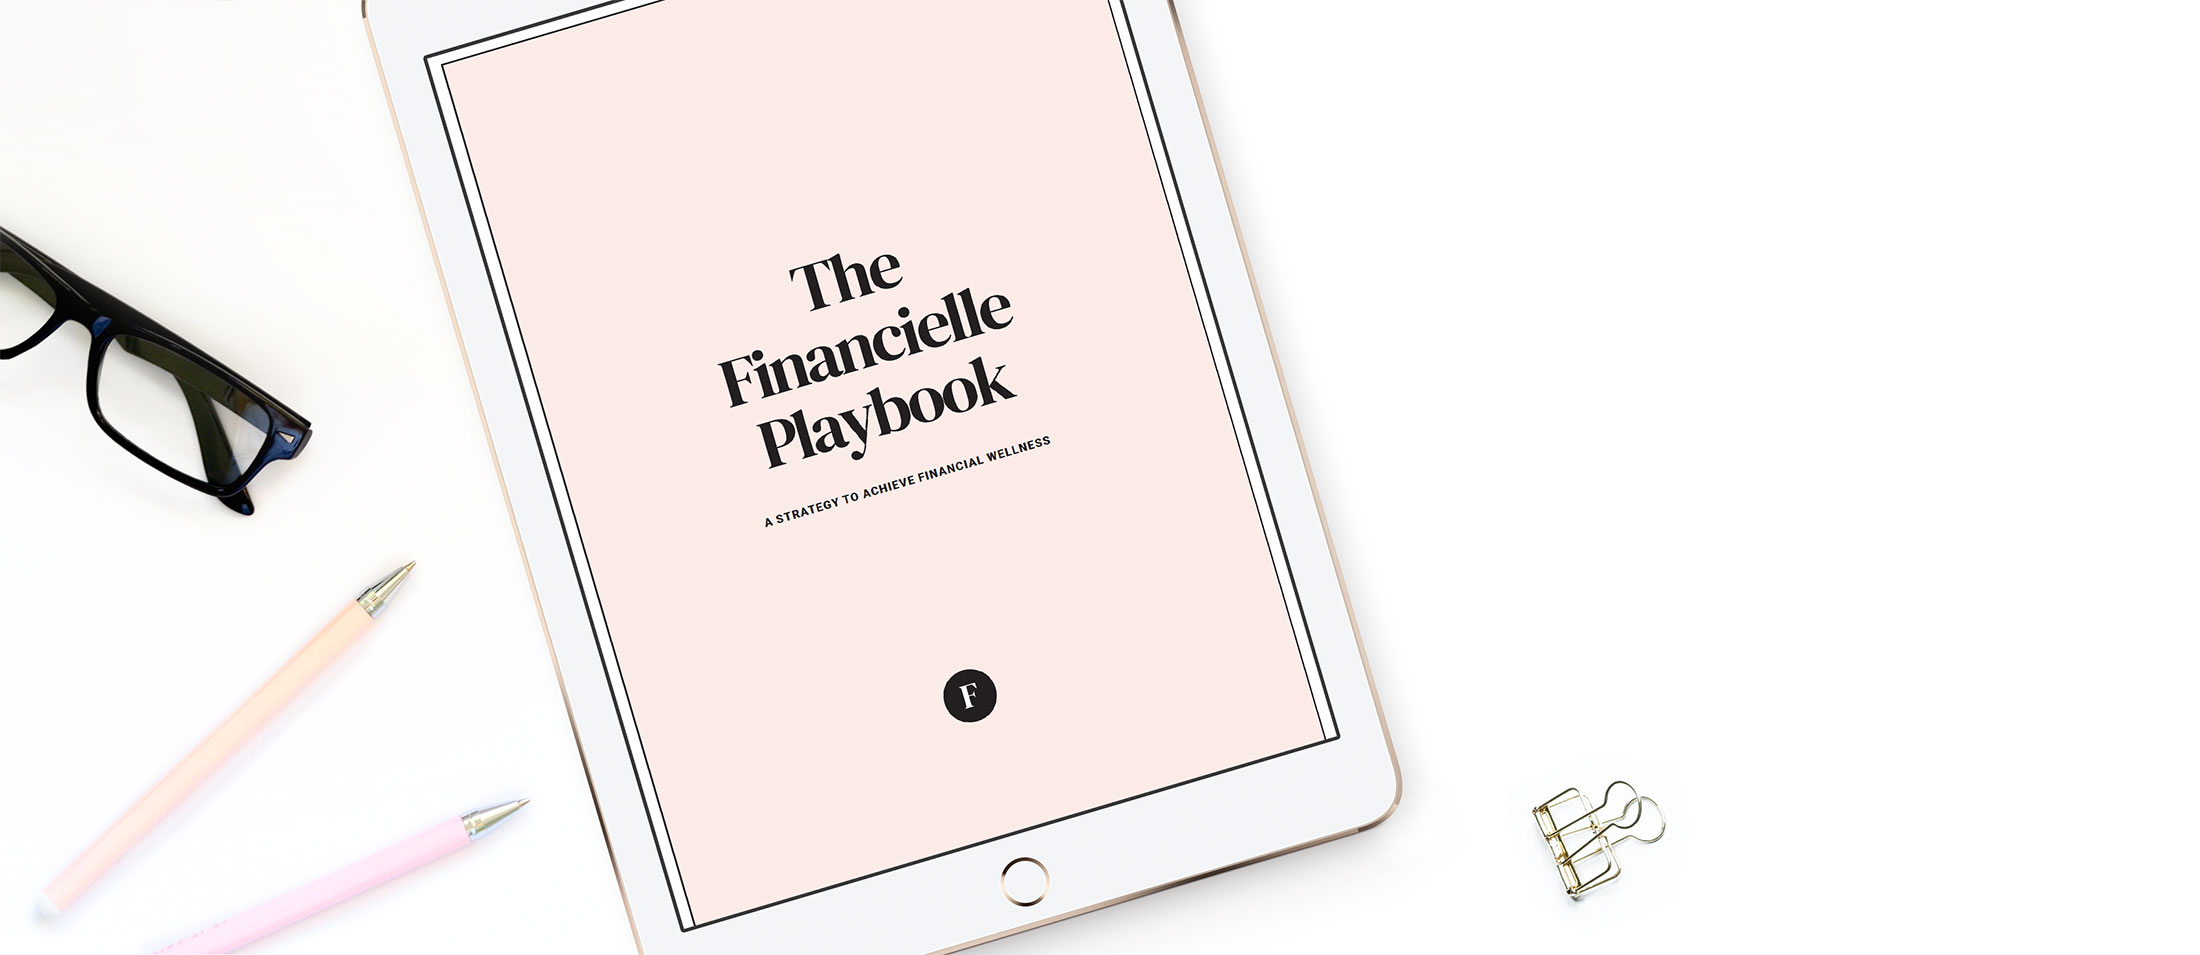 The Financielle Playbook